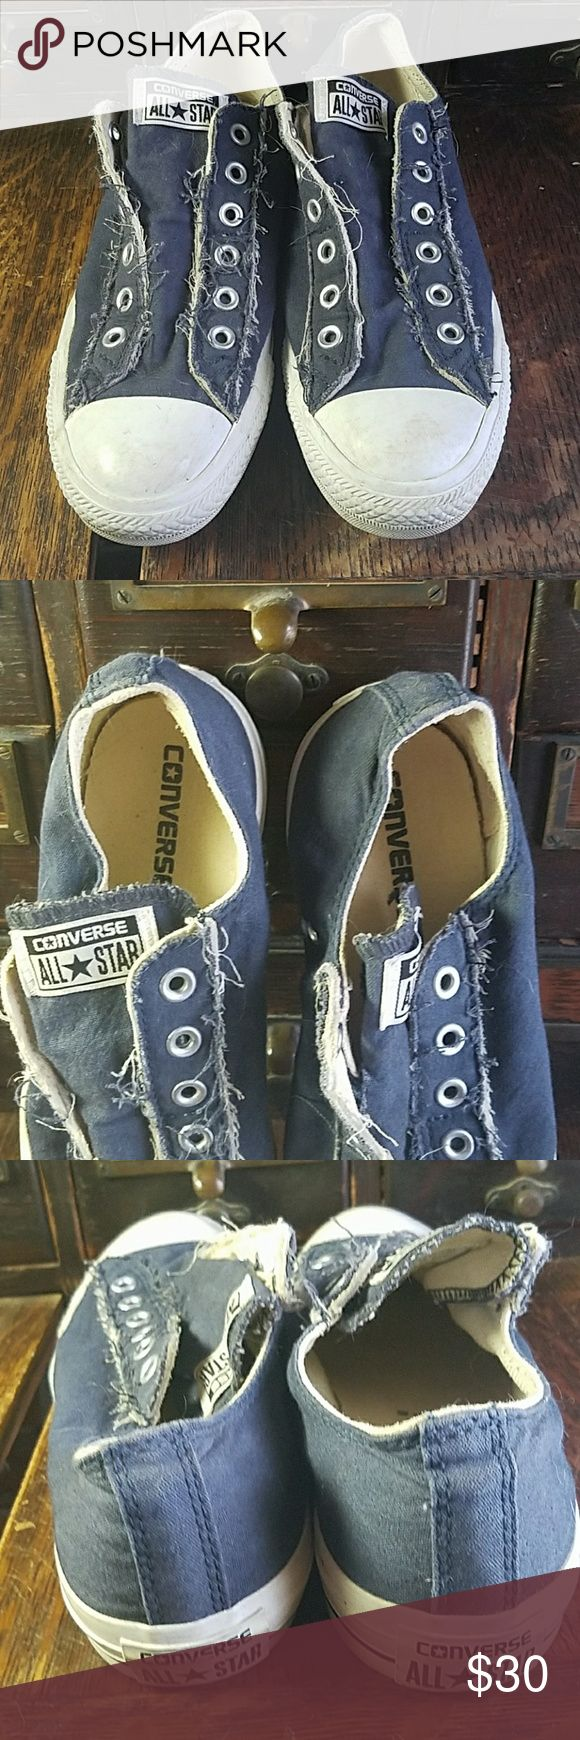 Blue converse slip on elastic shoe womens sz9 Navy blue (more faded not deep) converse slip on elastic womens as 9.  Scuffs on rubber toe area.  Worn a handful of times.  Too big for me Converse Shoes